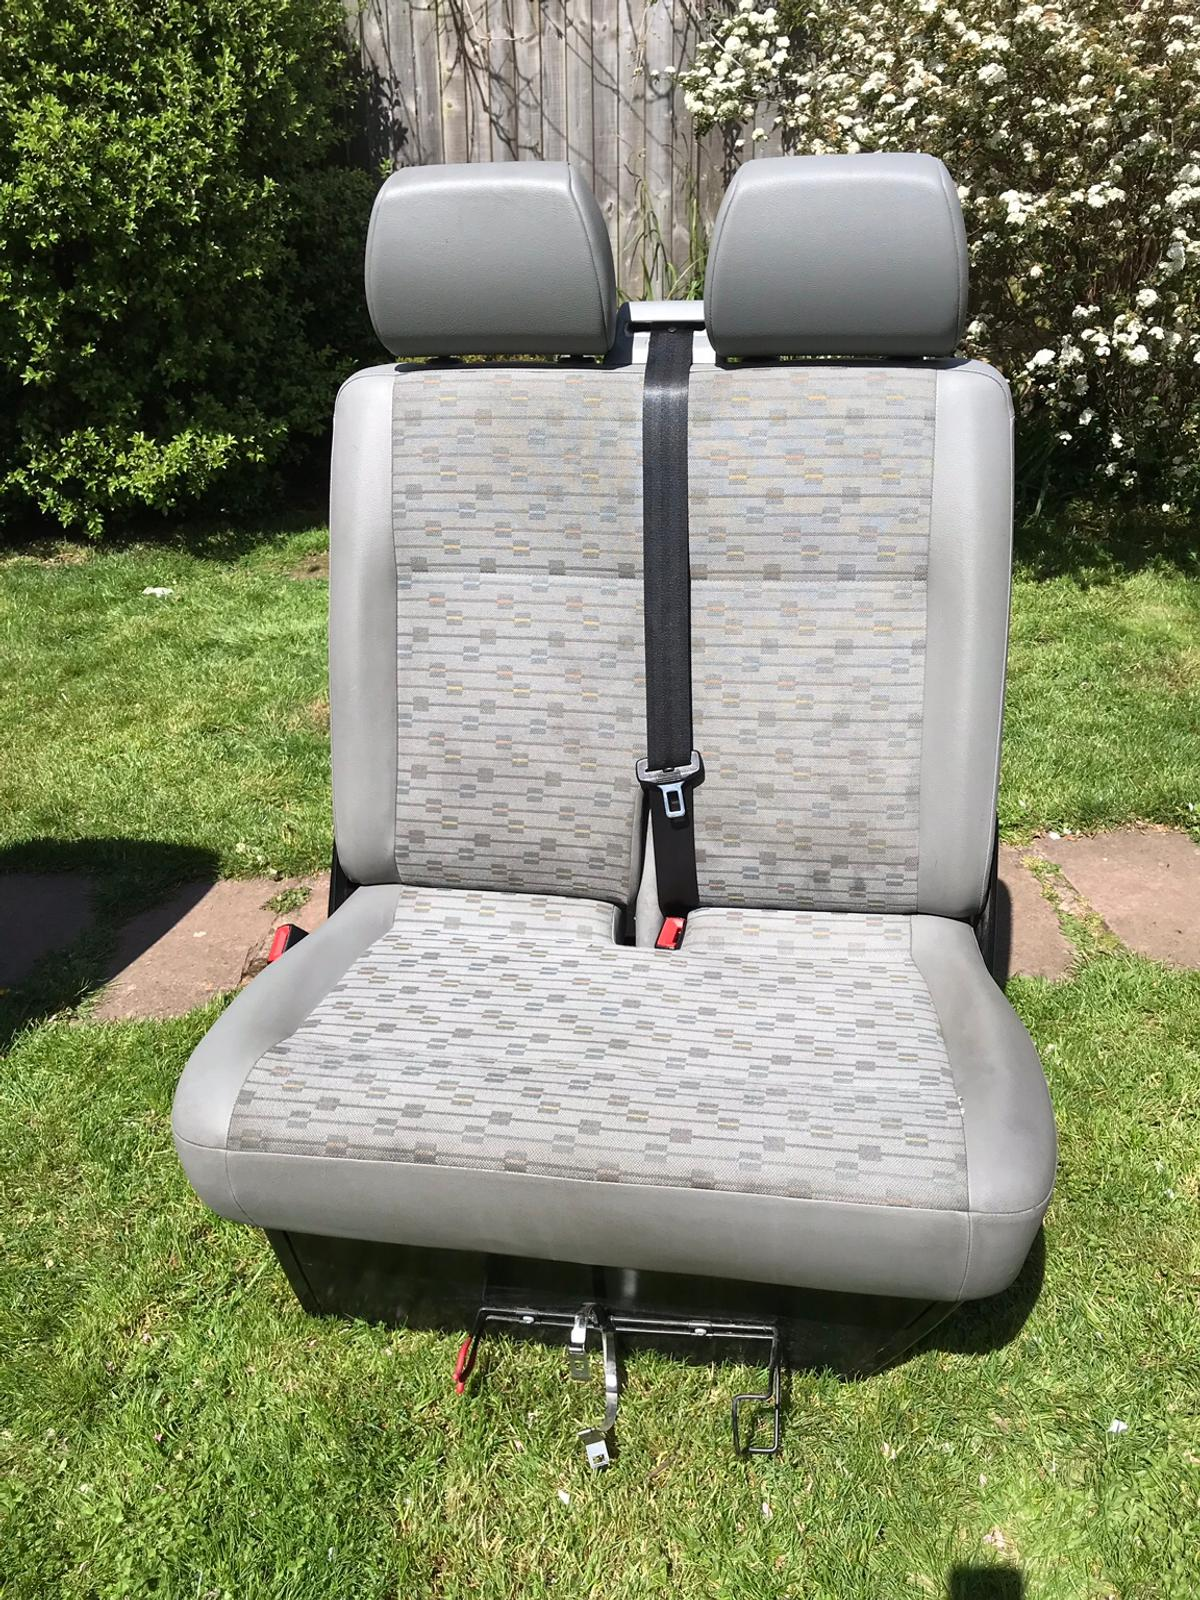 Vw transporter passenger seat inc aux battery in EX2 Exeter